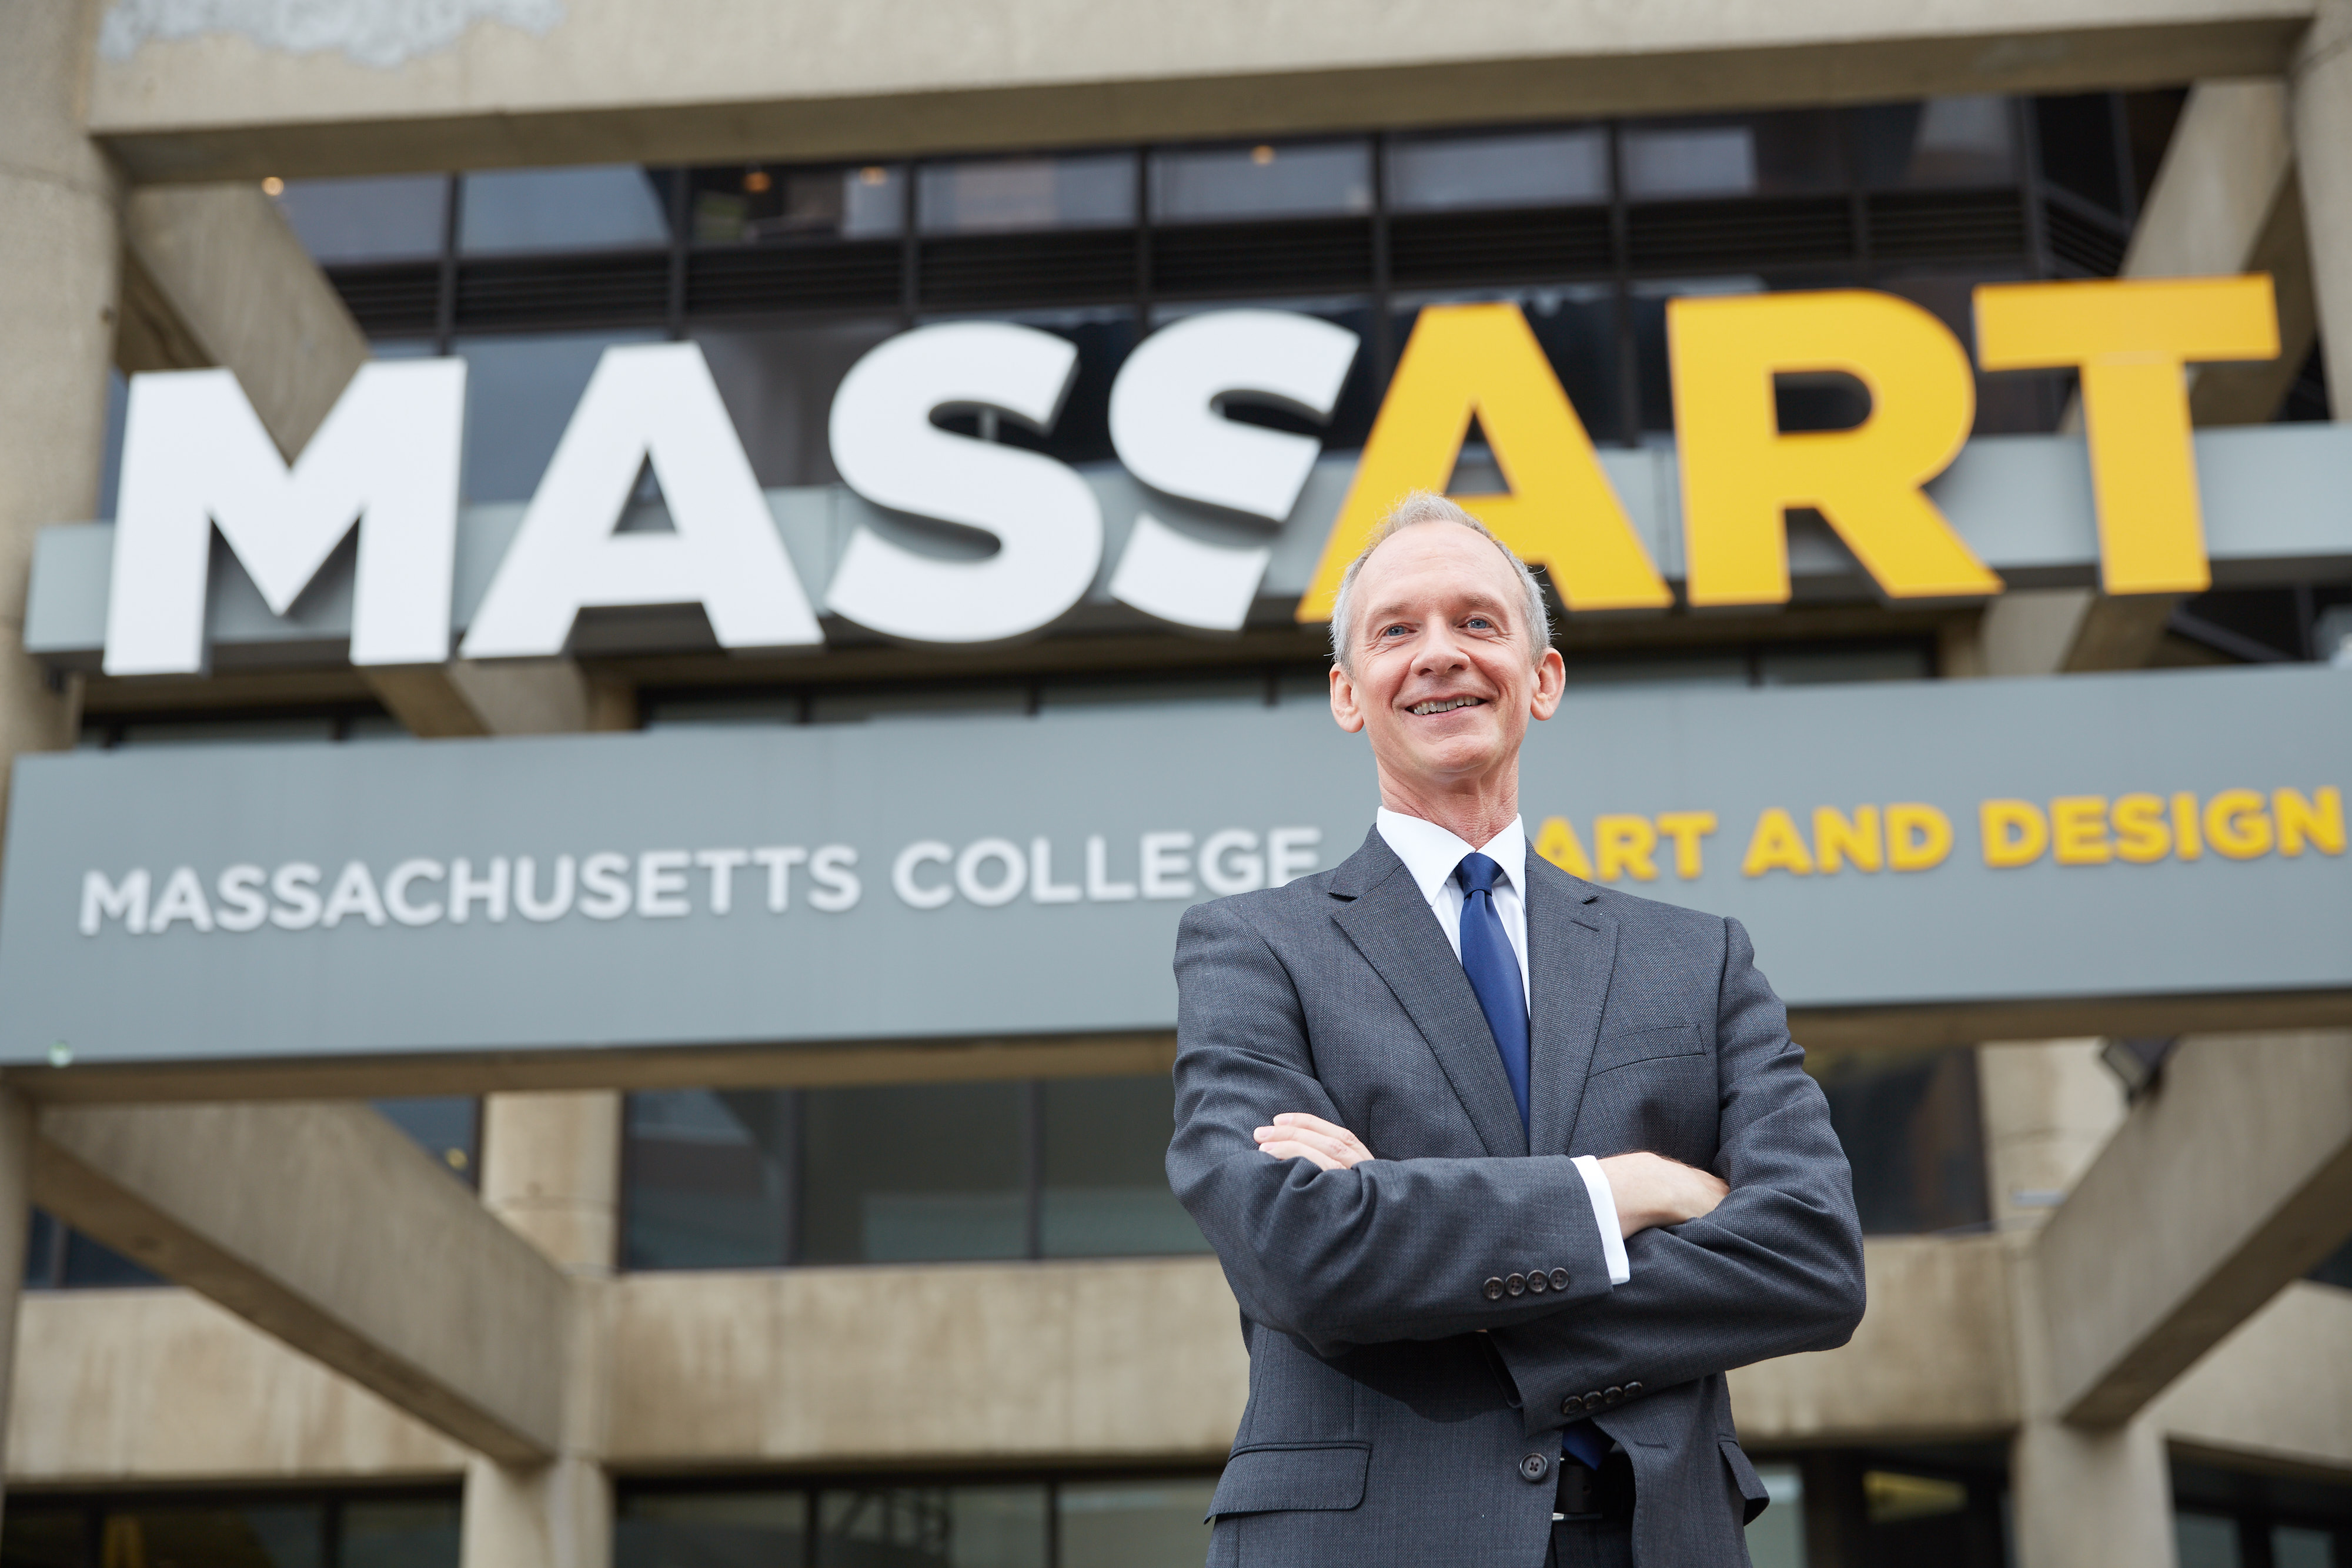 David Nelson in front of the MassArt sign.